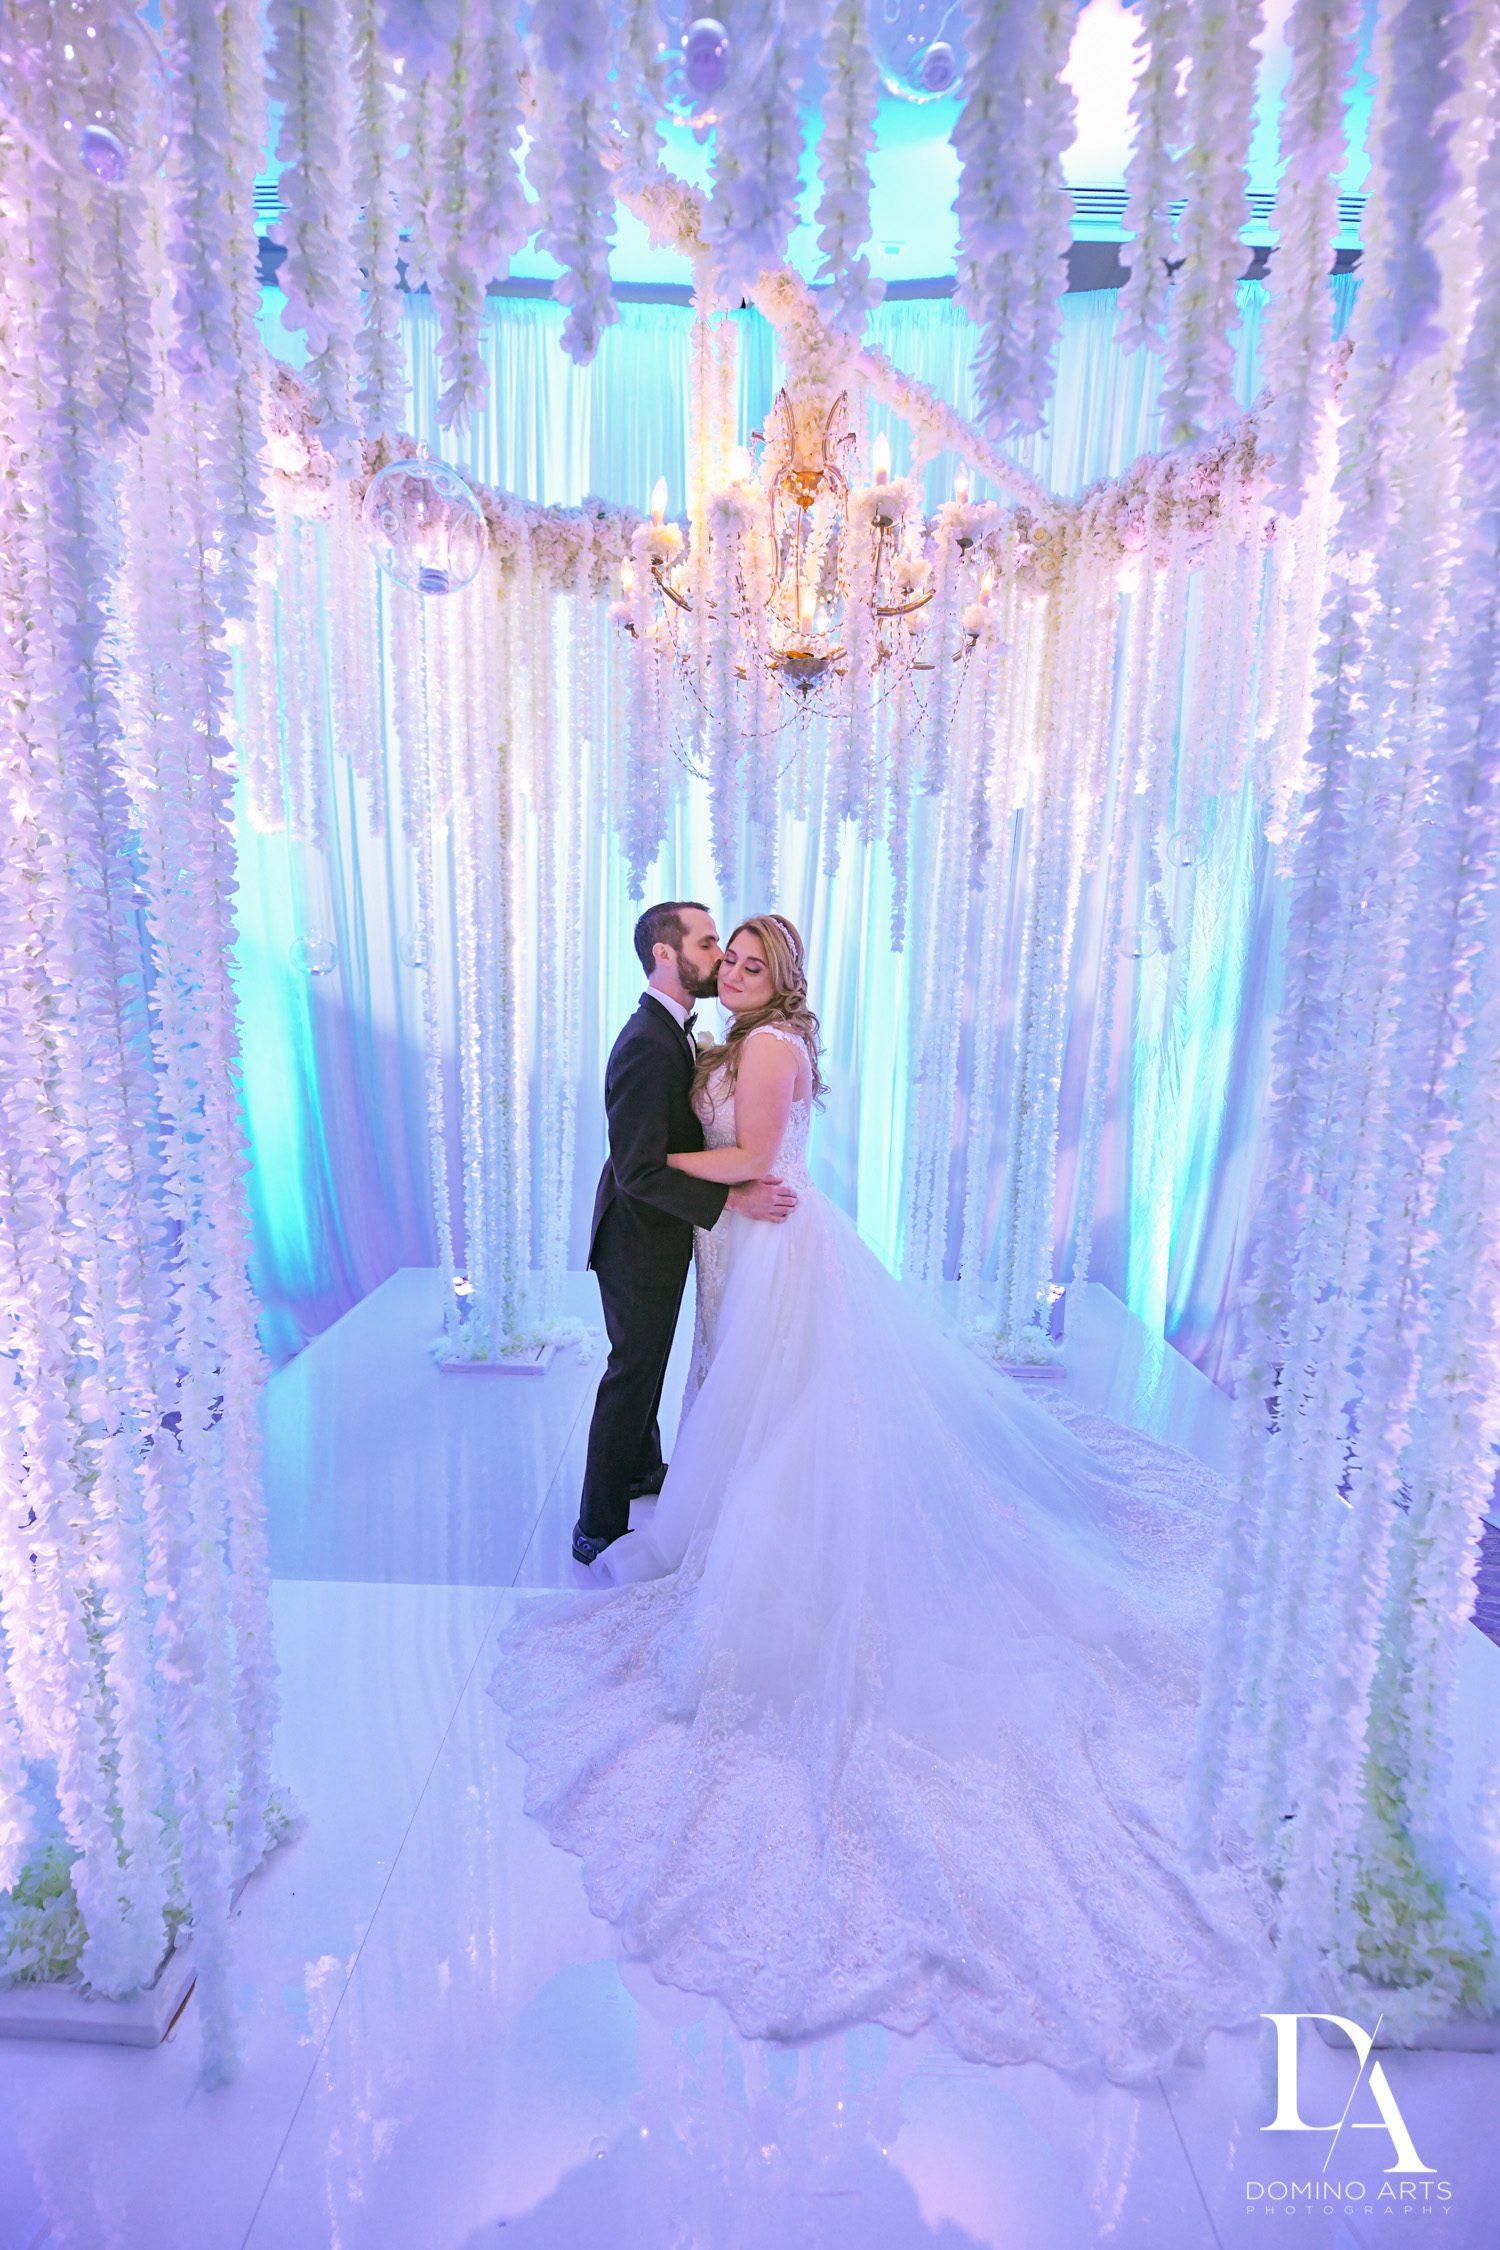 flower chuppah at Ultimate Events Wedding at Turnberry Isle Resort Miami by Domino Arts Photography